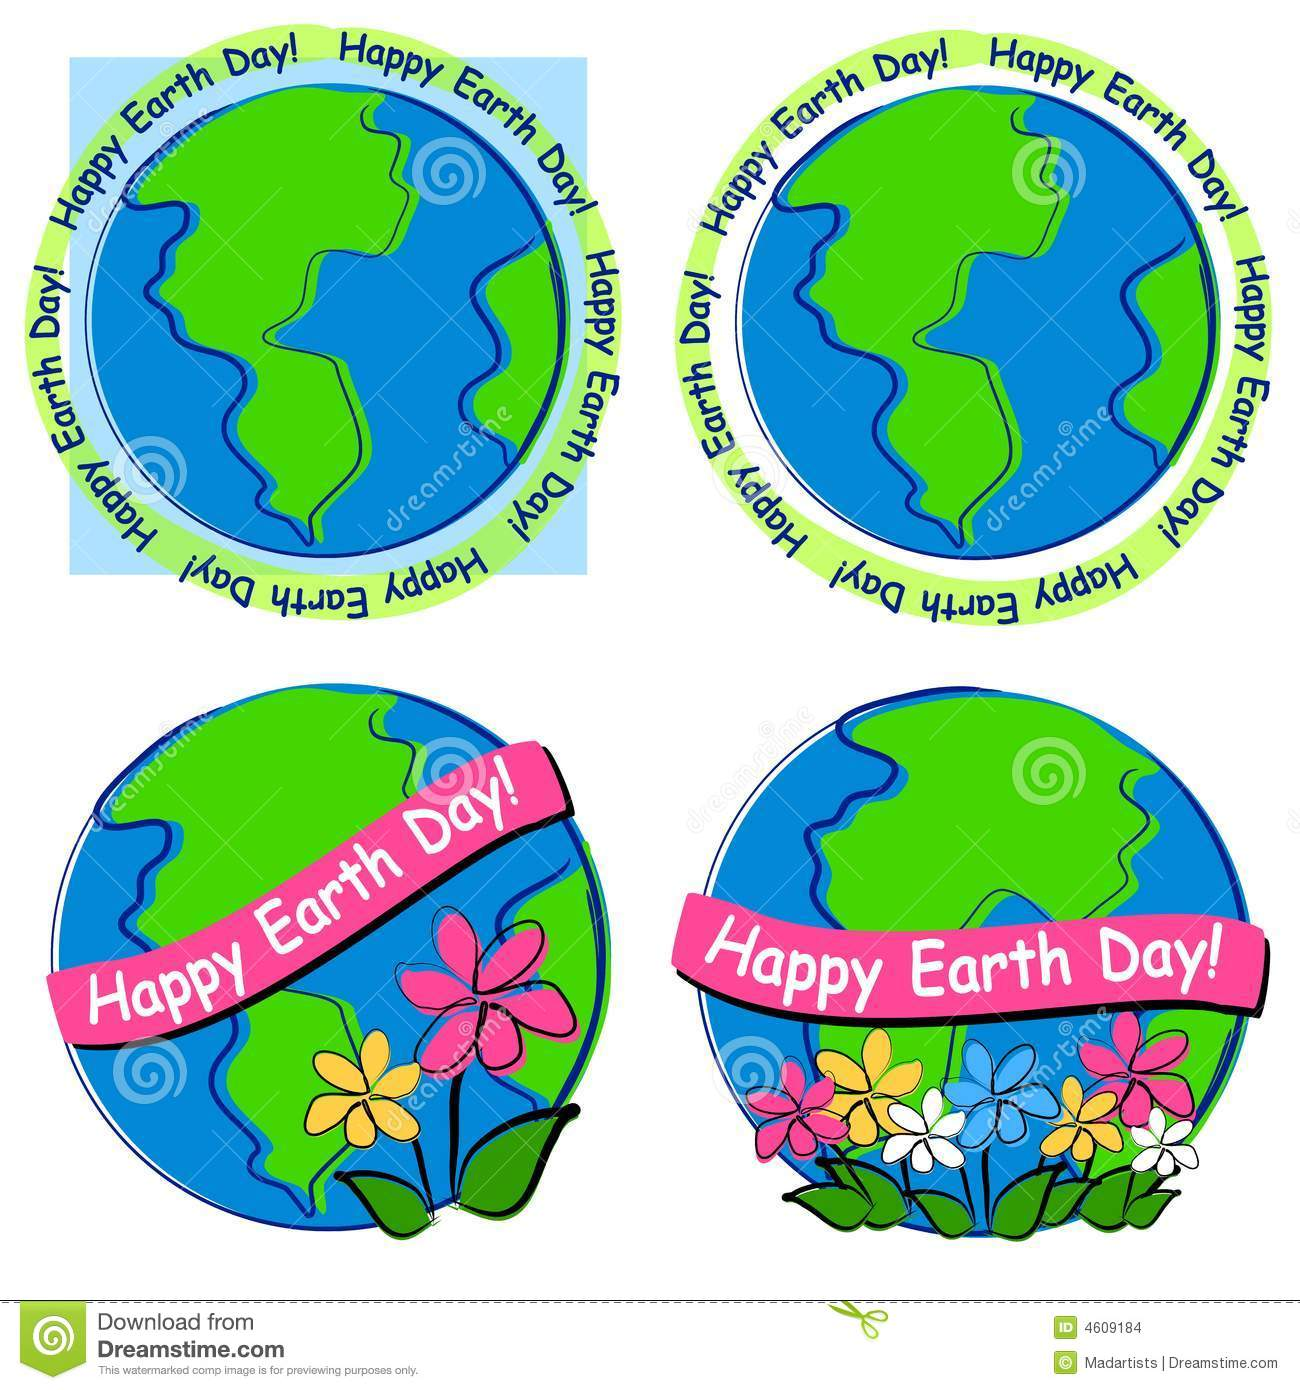 Happy Earth Day Clip Art Stoc - Earth Day Clipart